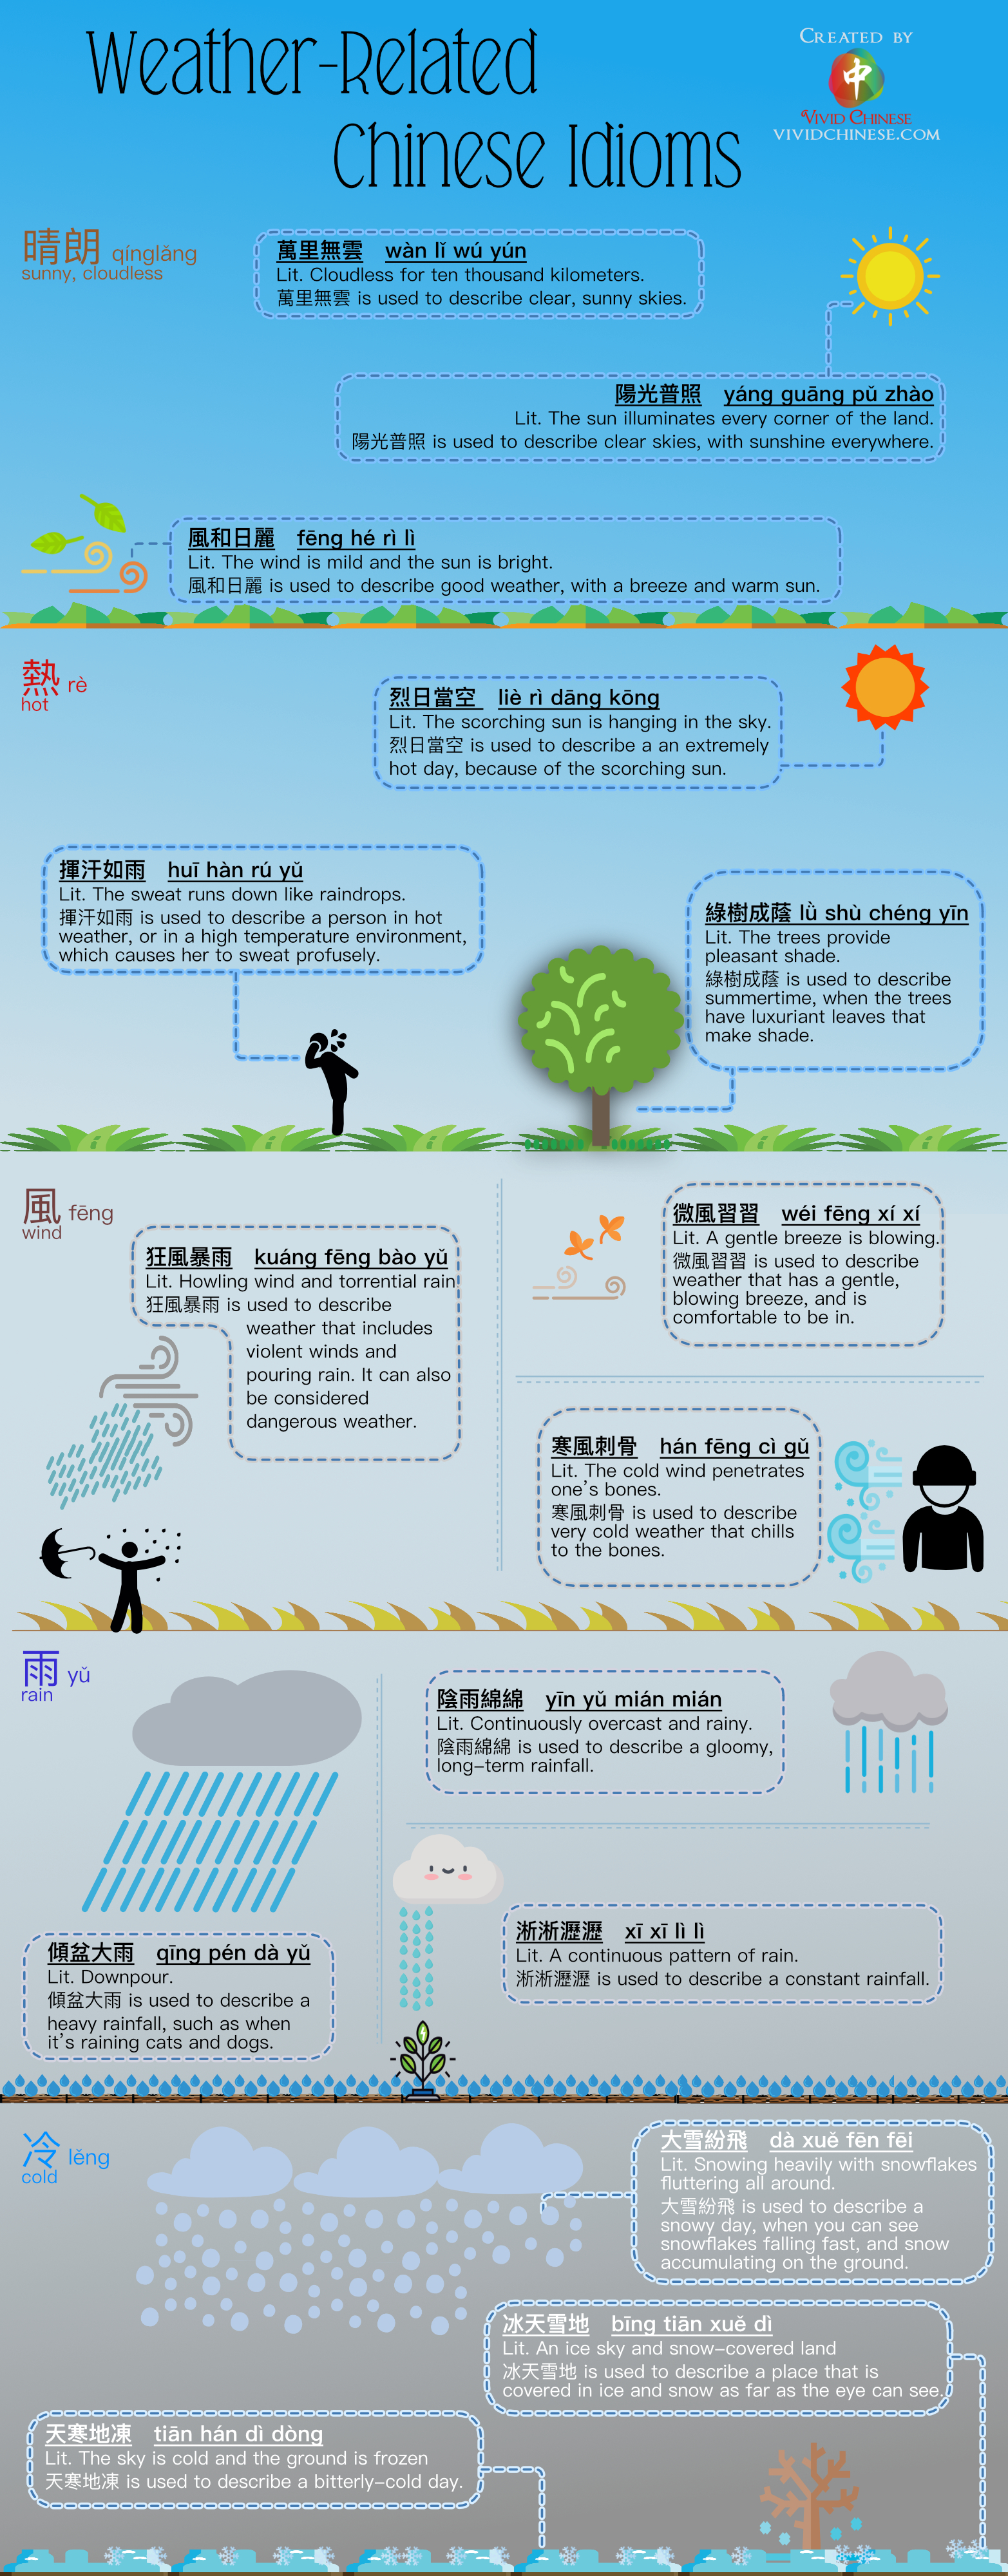 Weather-Related Chinese IdiomsTraditionalChinese Version Infographic